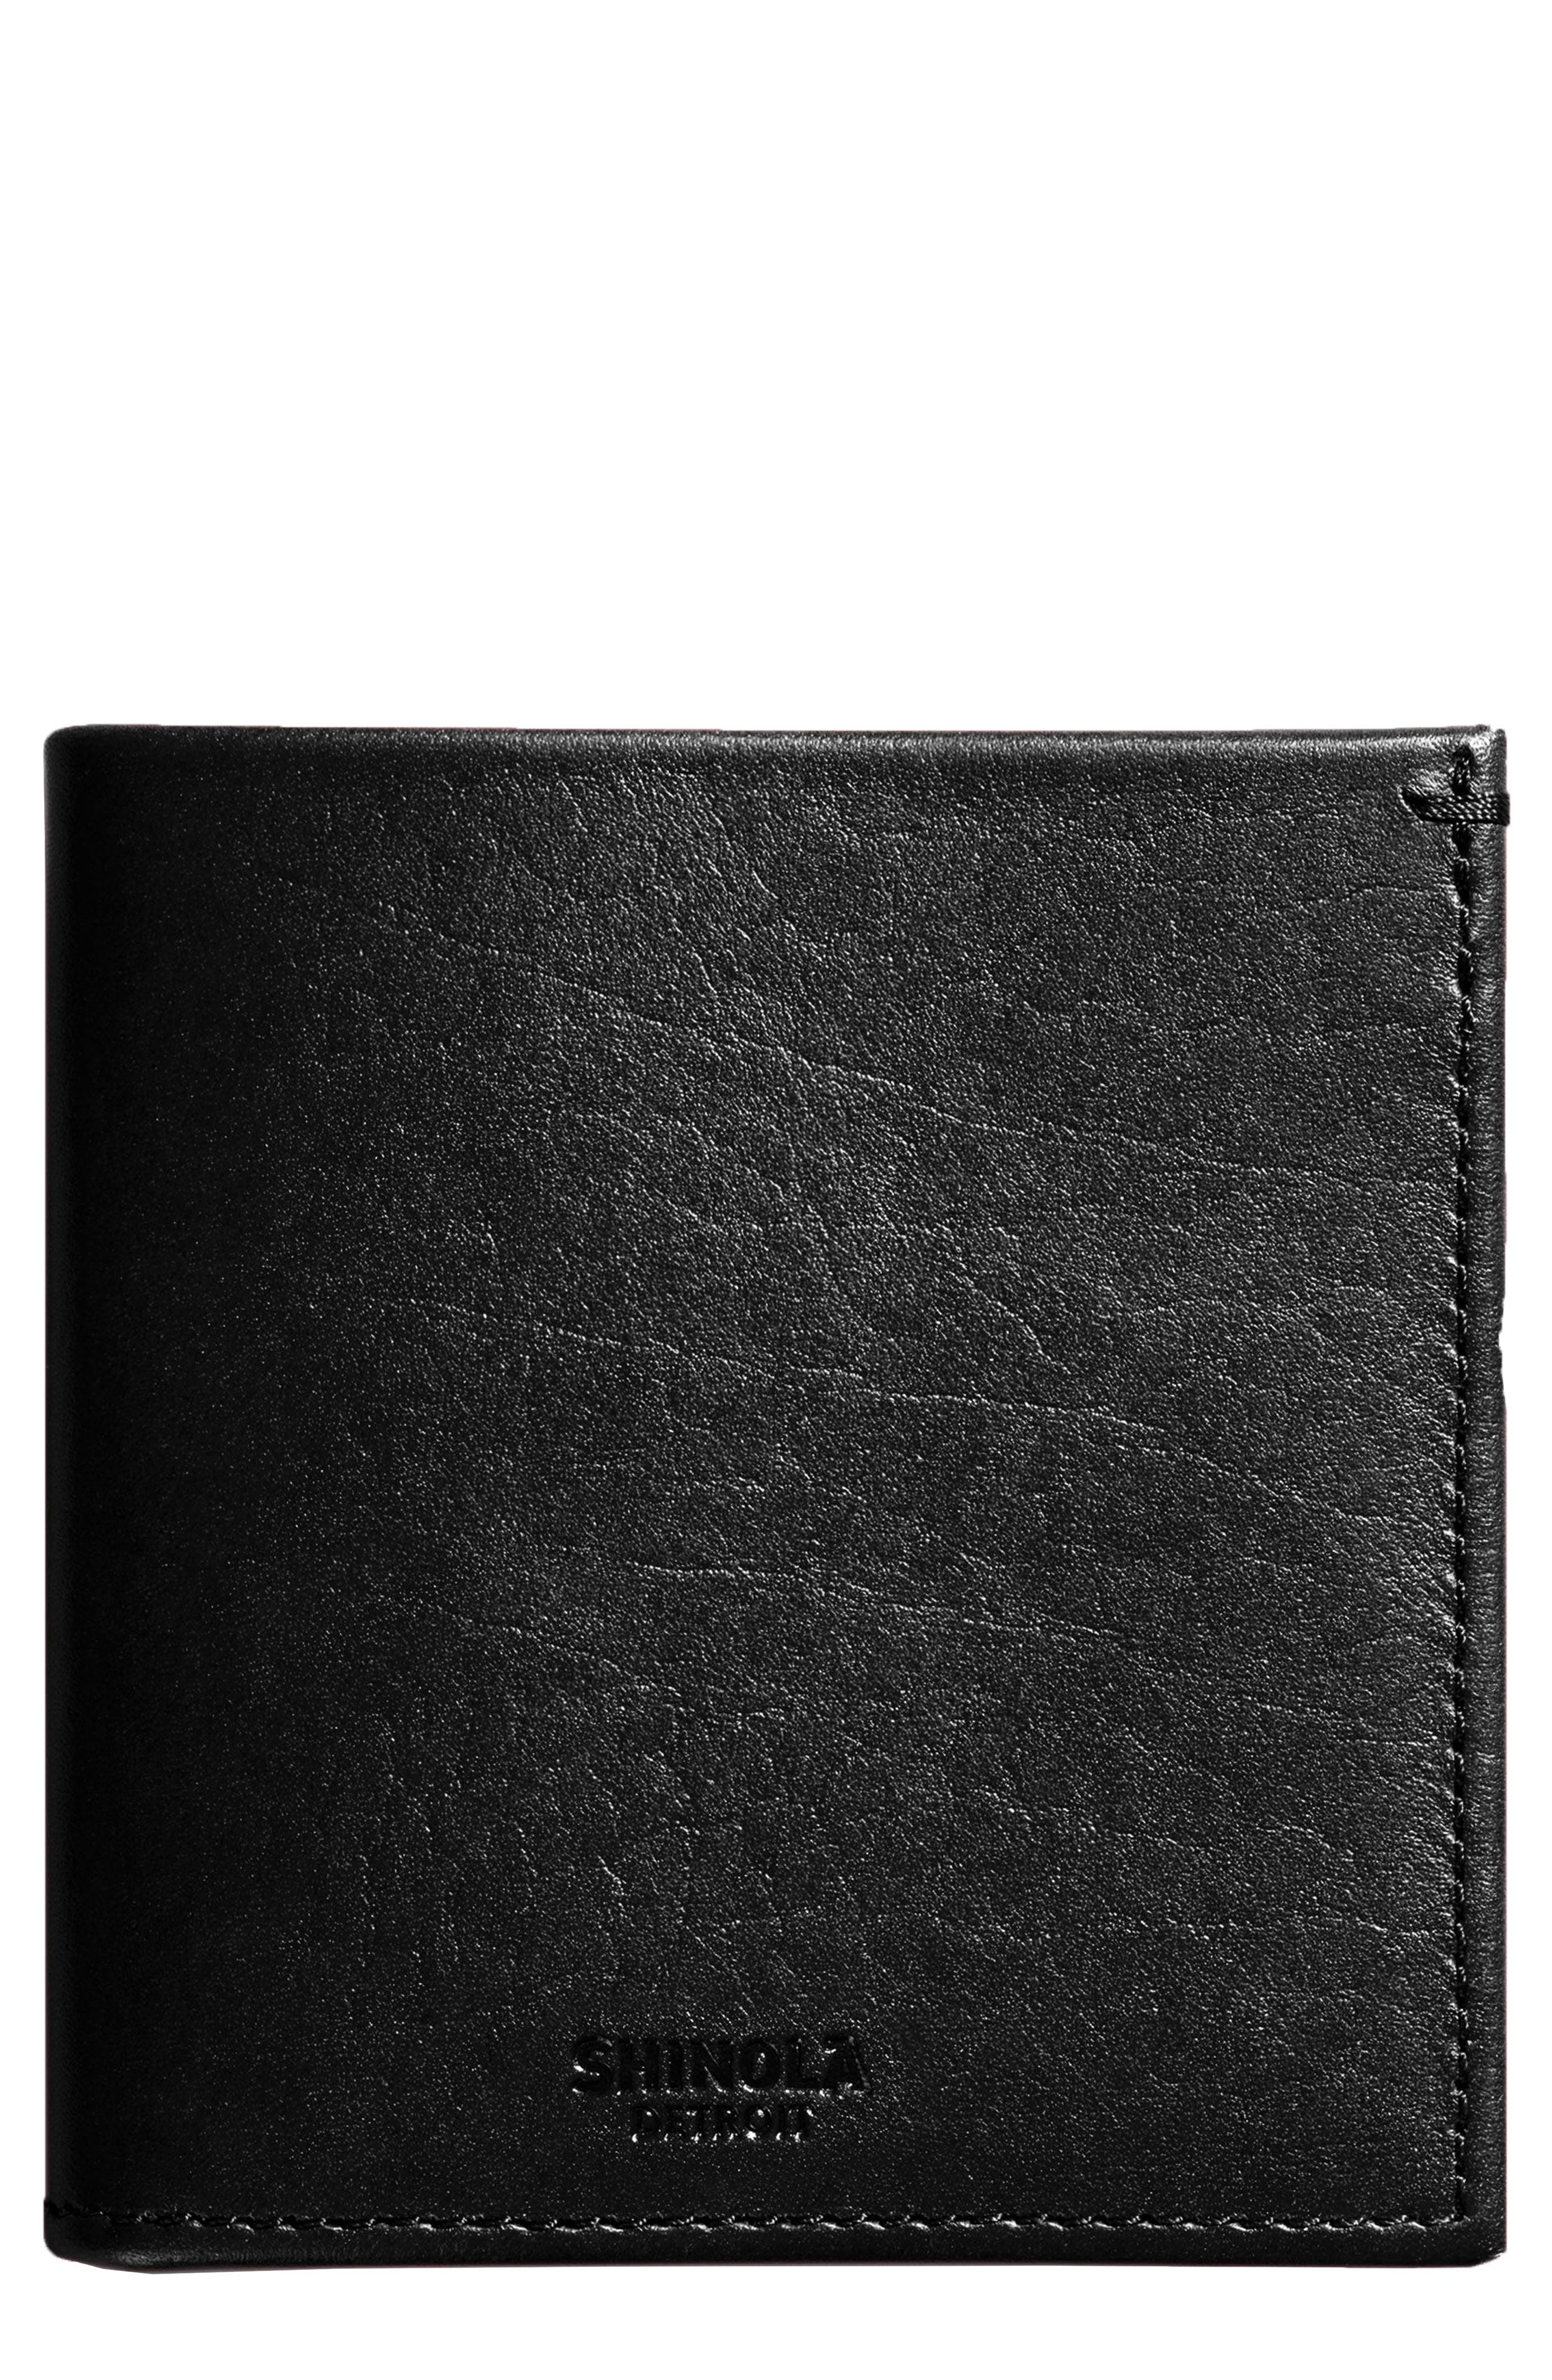 Square Bifold Leather Wallet,                         Main,                         color, 001